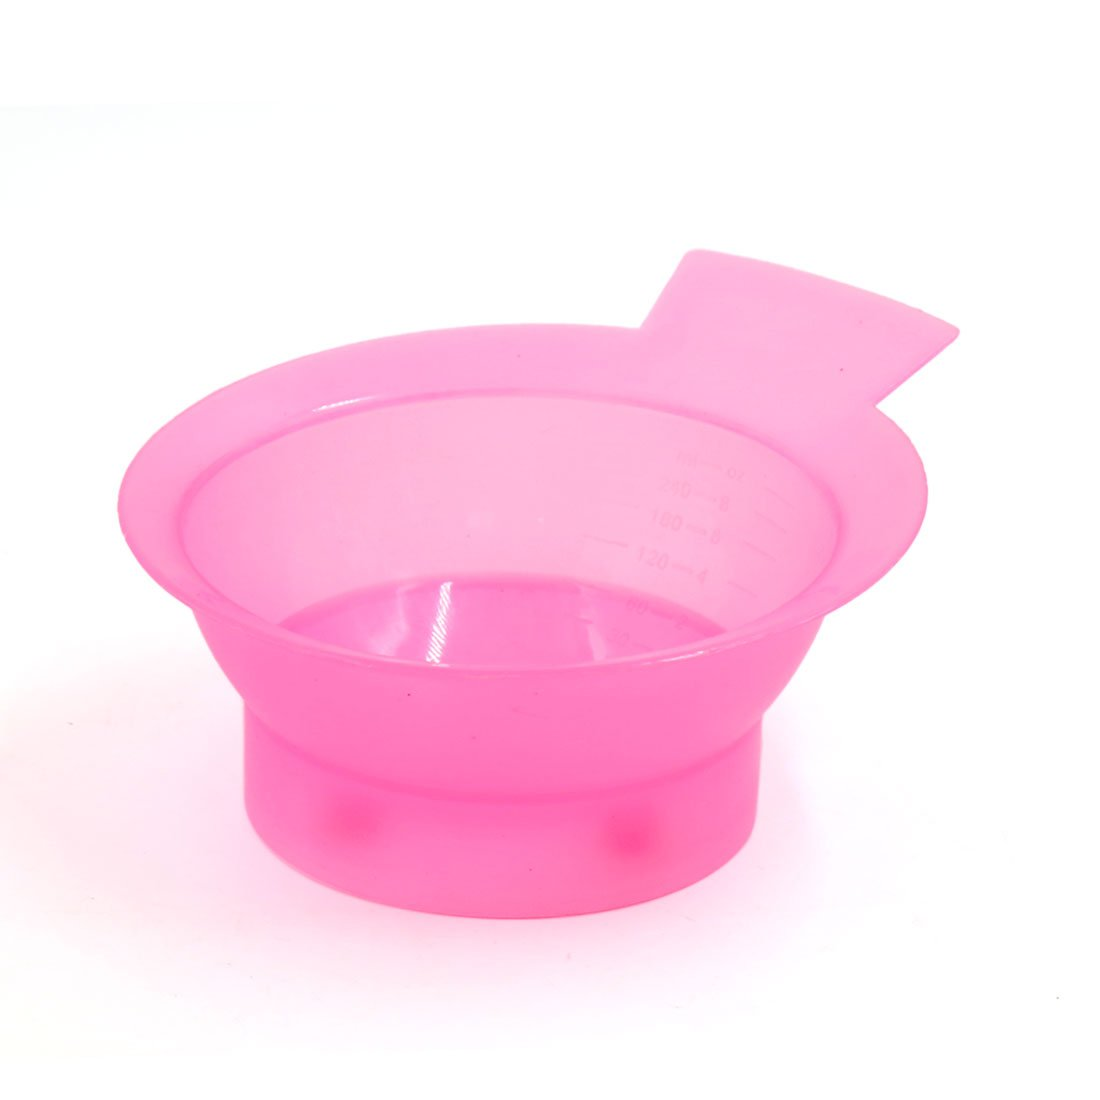 uxcellPink Plastic Dyeing Bleaching Hair Styling Color Bowl Mixing Measuring Container a17022400ux0287